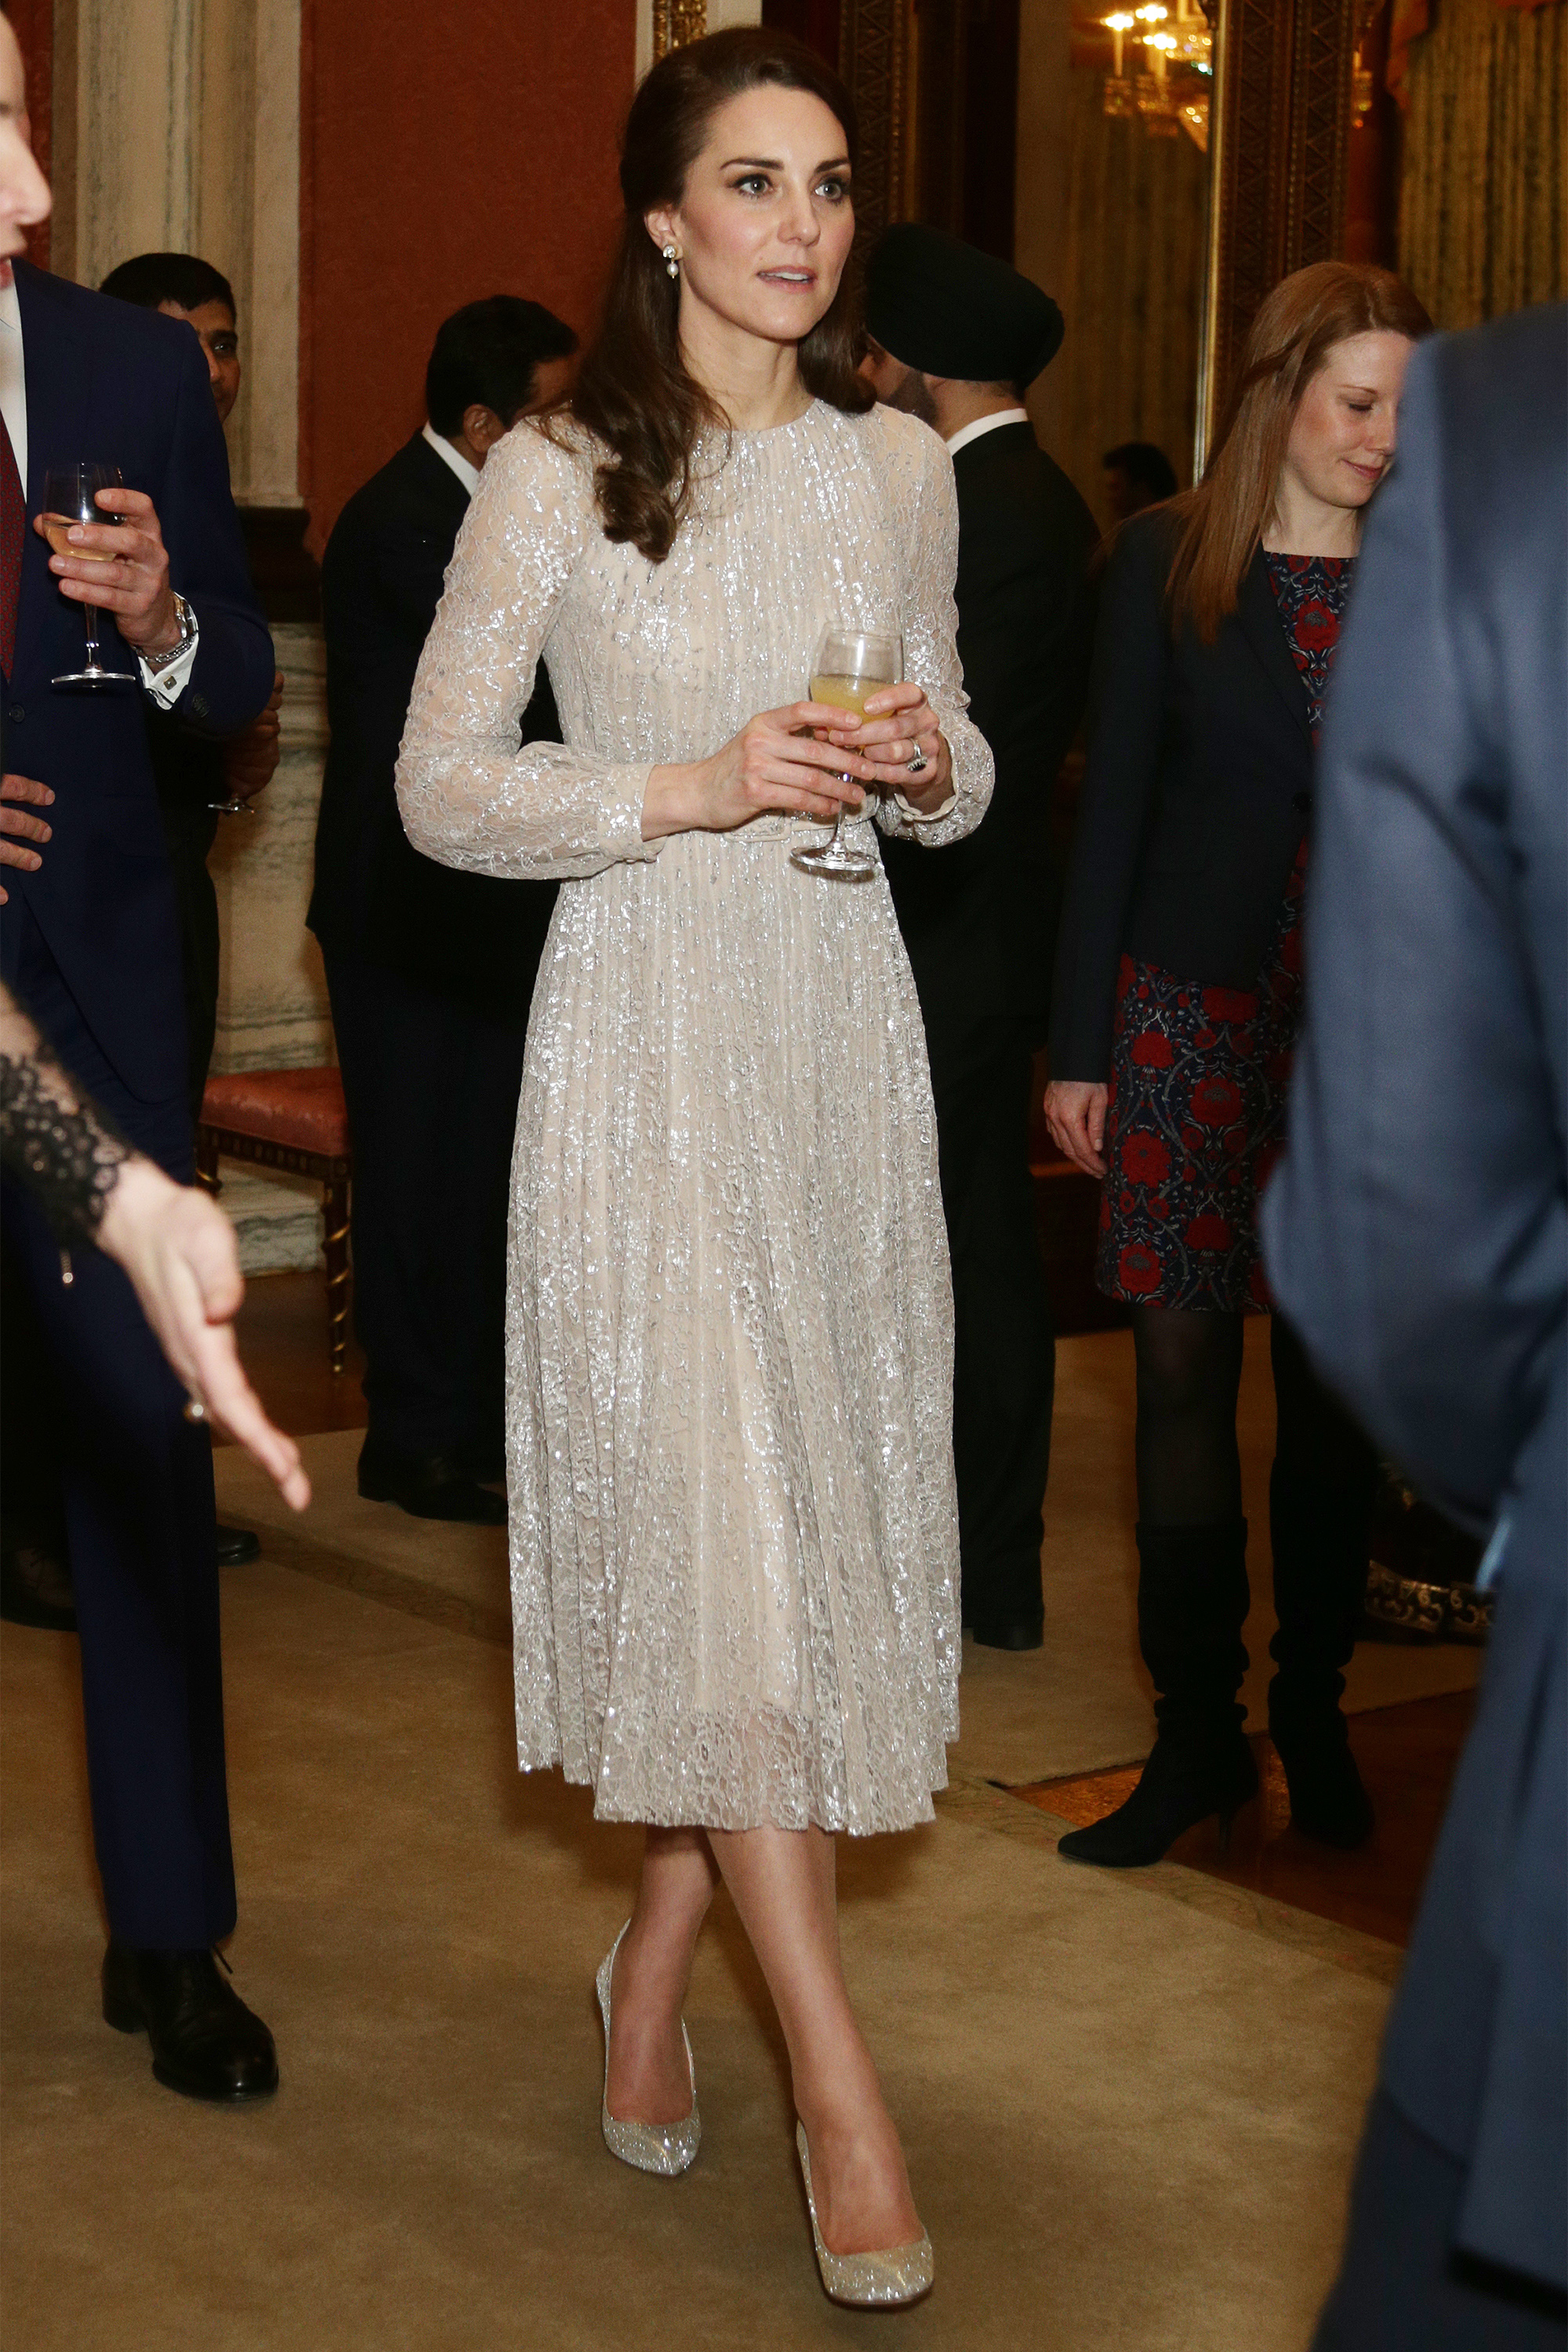 Kate Middleton's Best Style Moments - The Duchess of Cambridge's